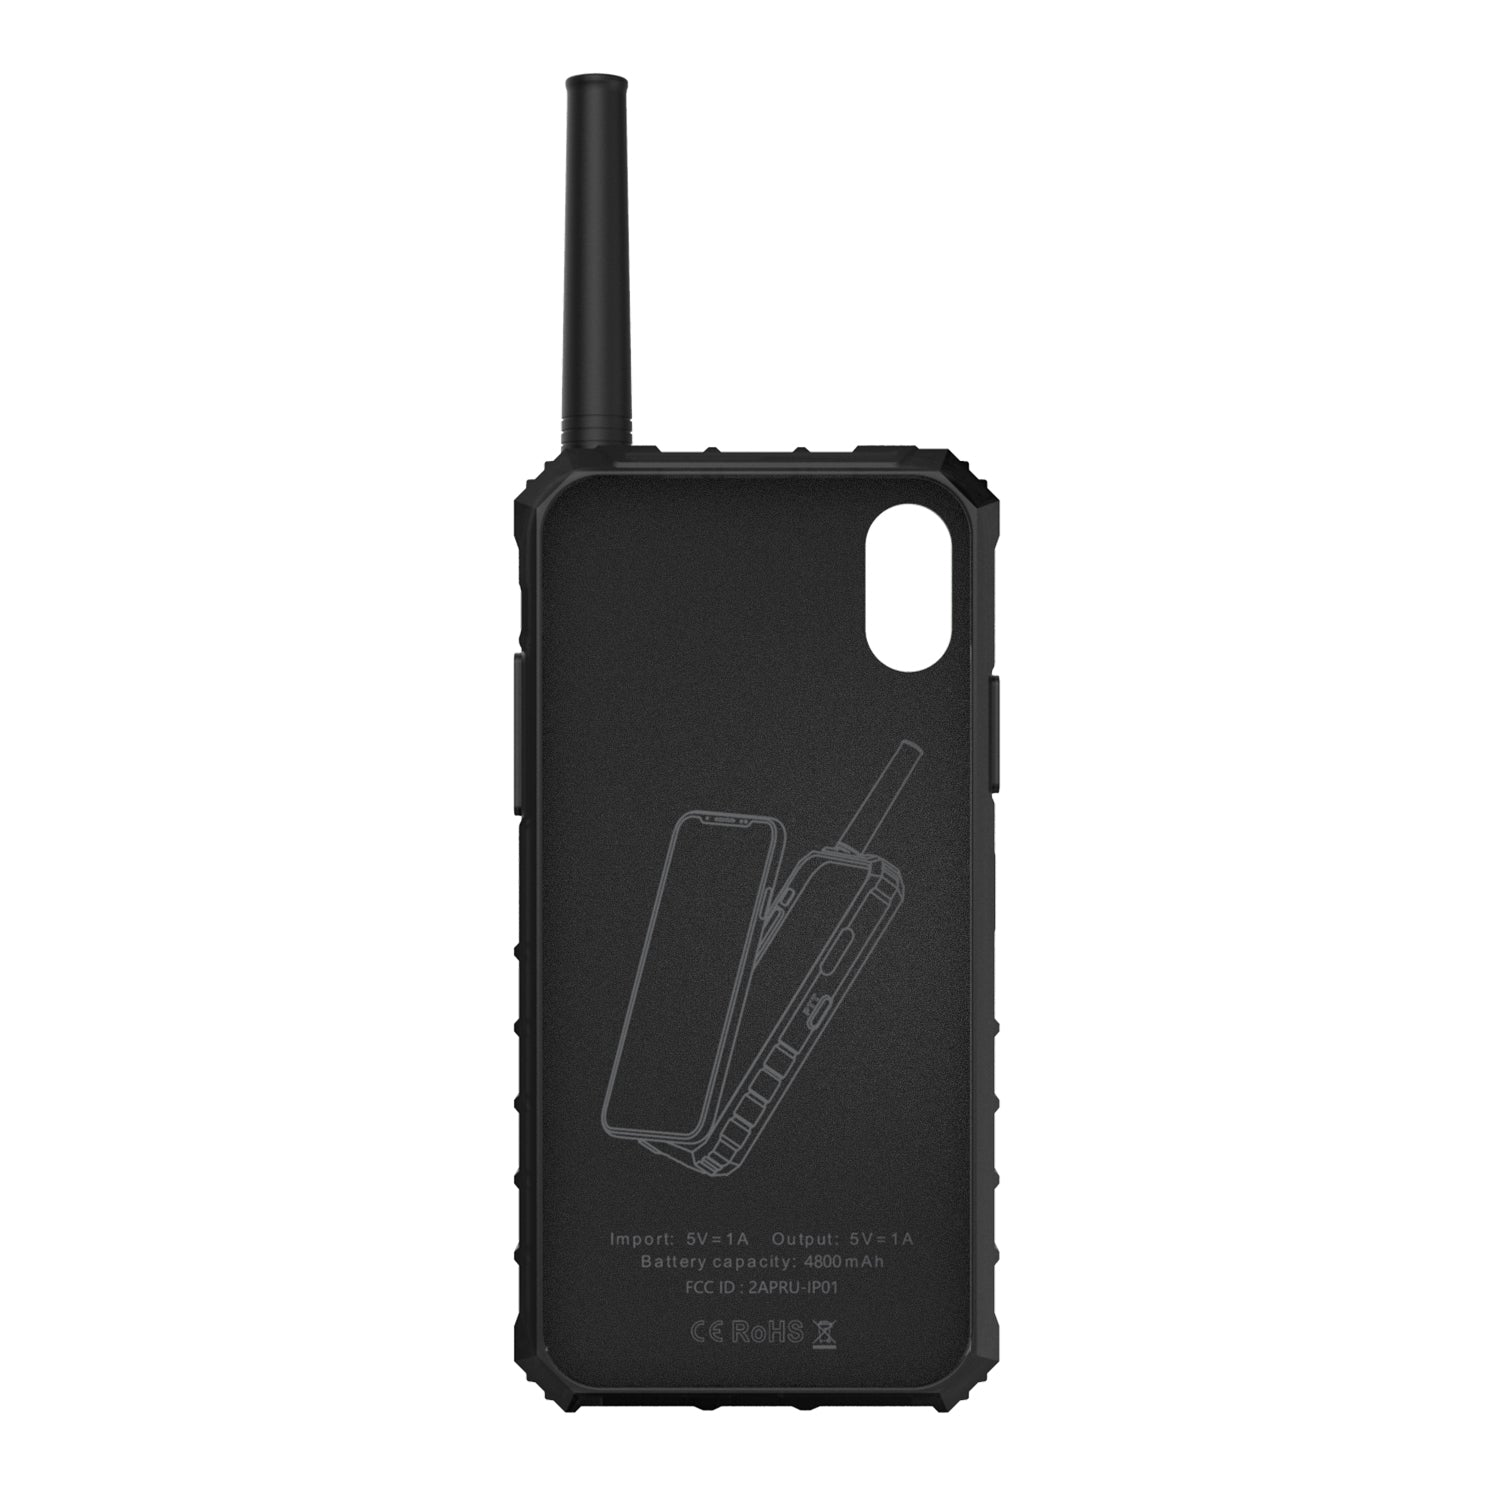 GM-6 iRaddy iPhone Case Walkie Talkies Programming Cable for GM-4 GM-5